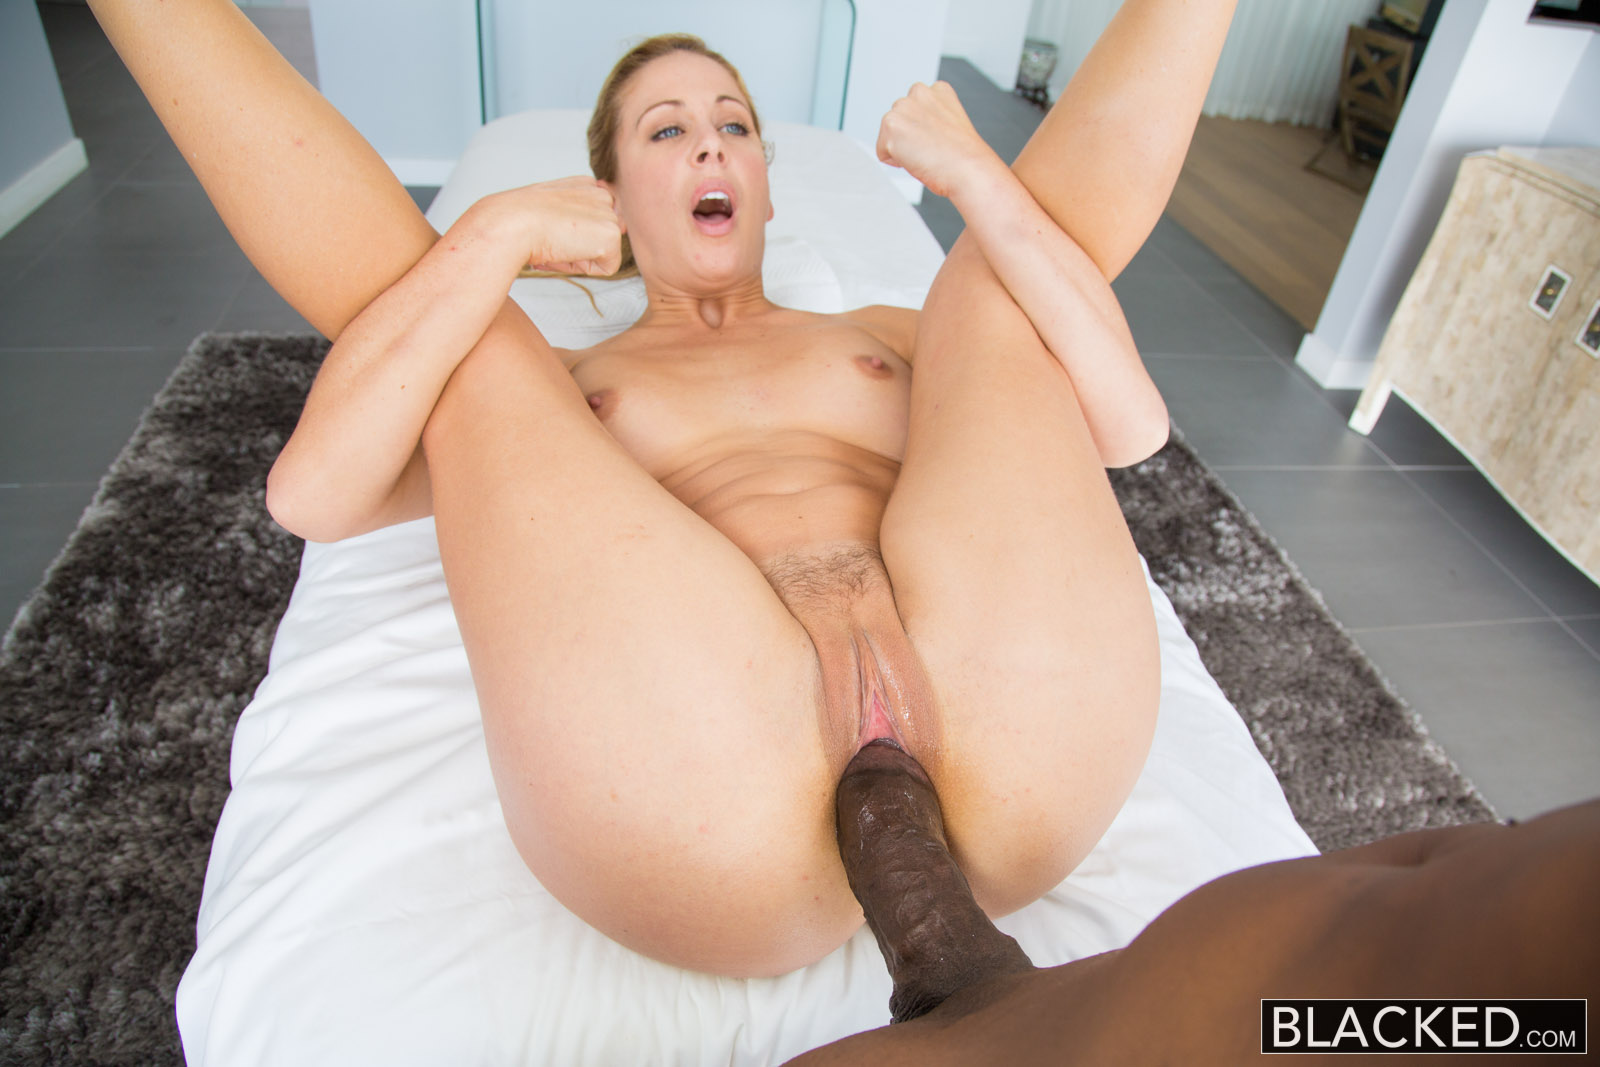 Black pussy rider 3same nsfw photo